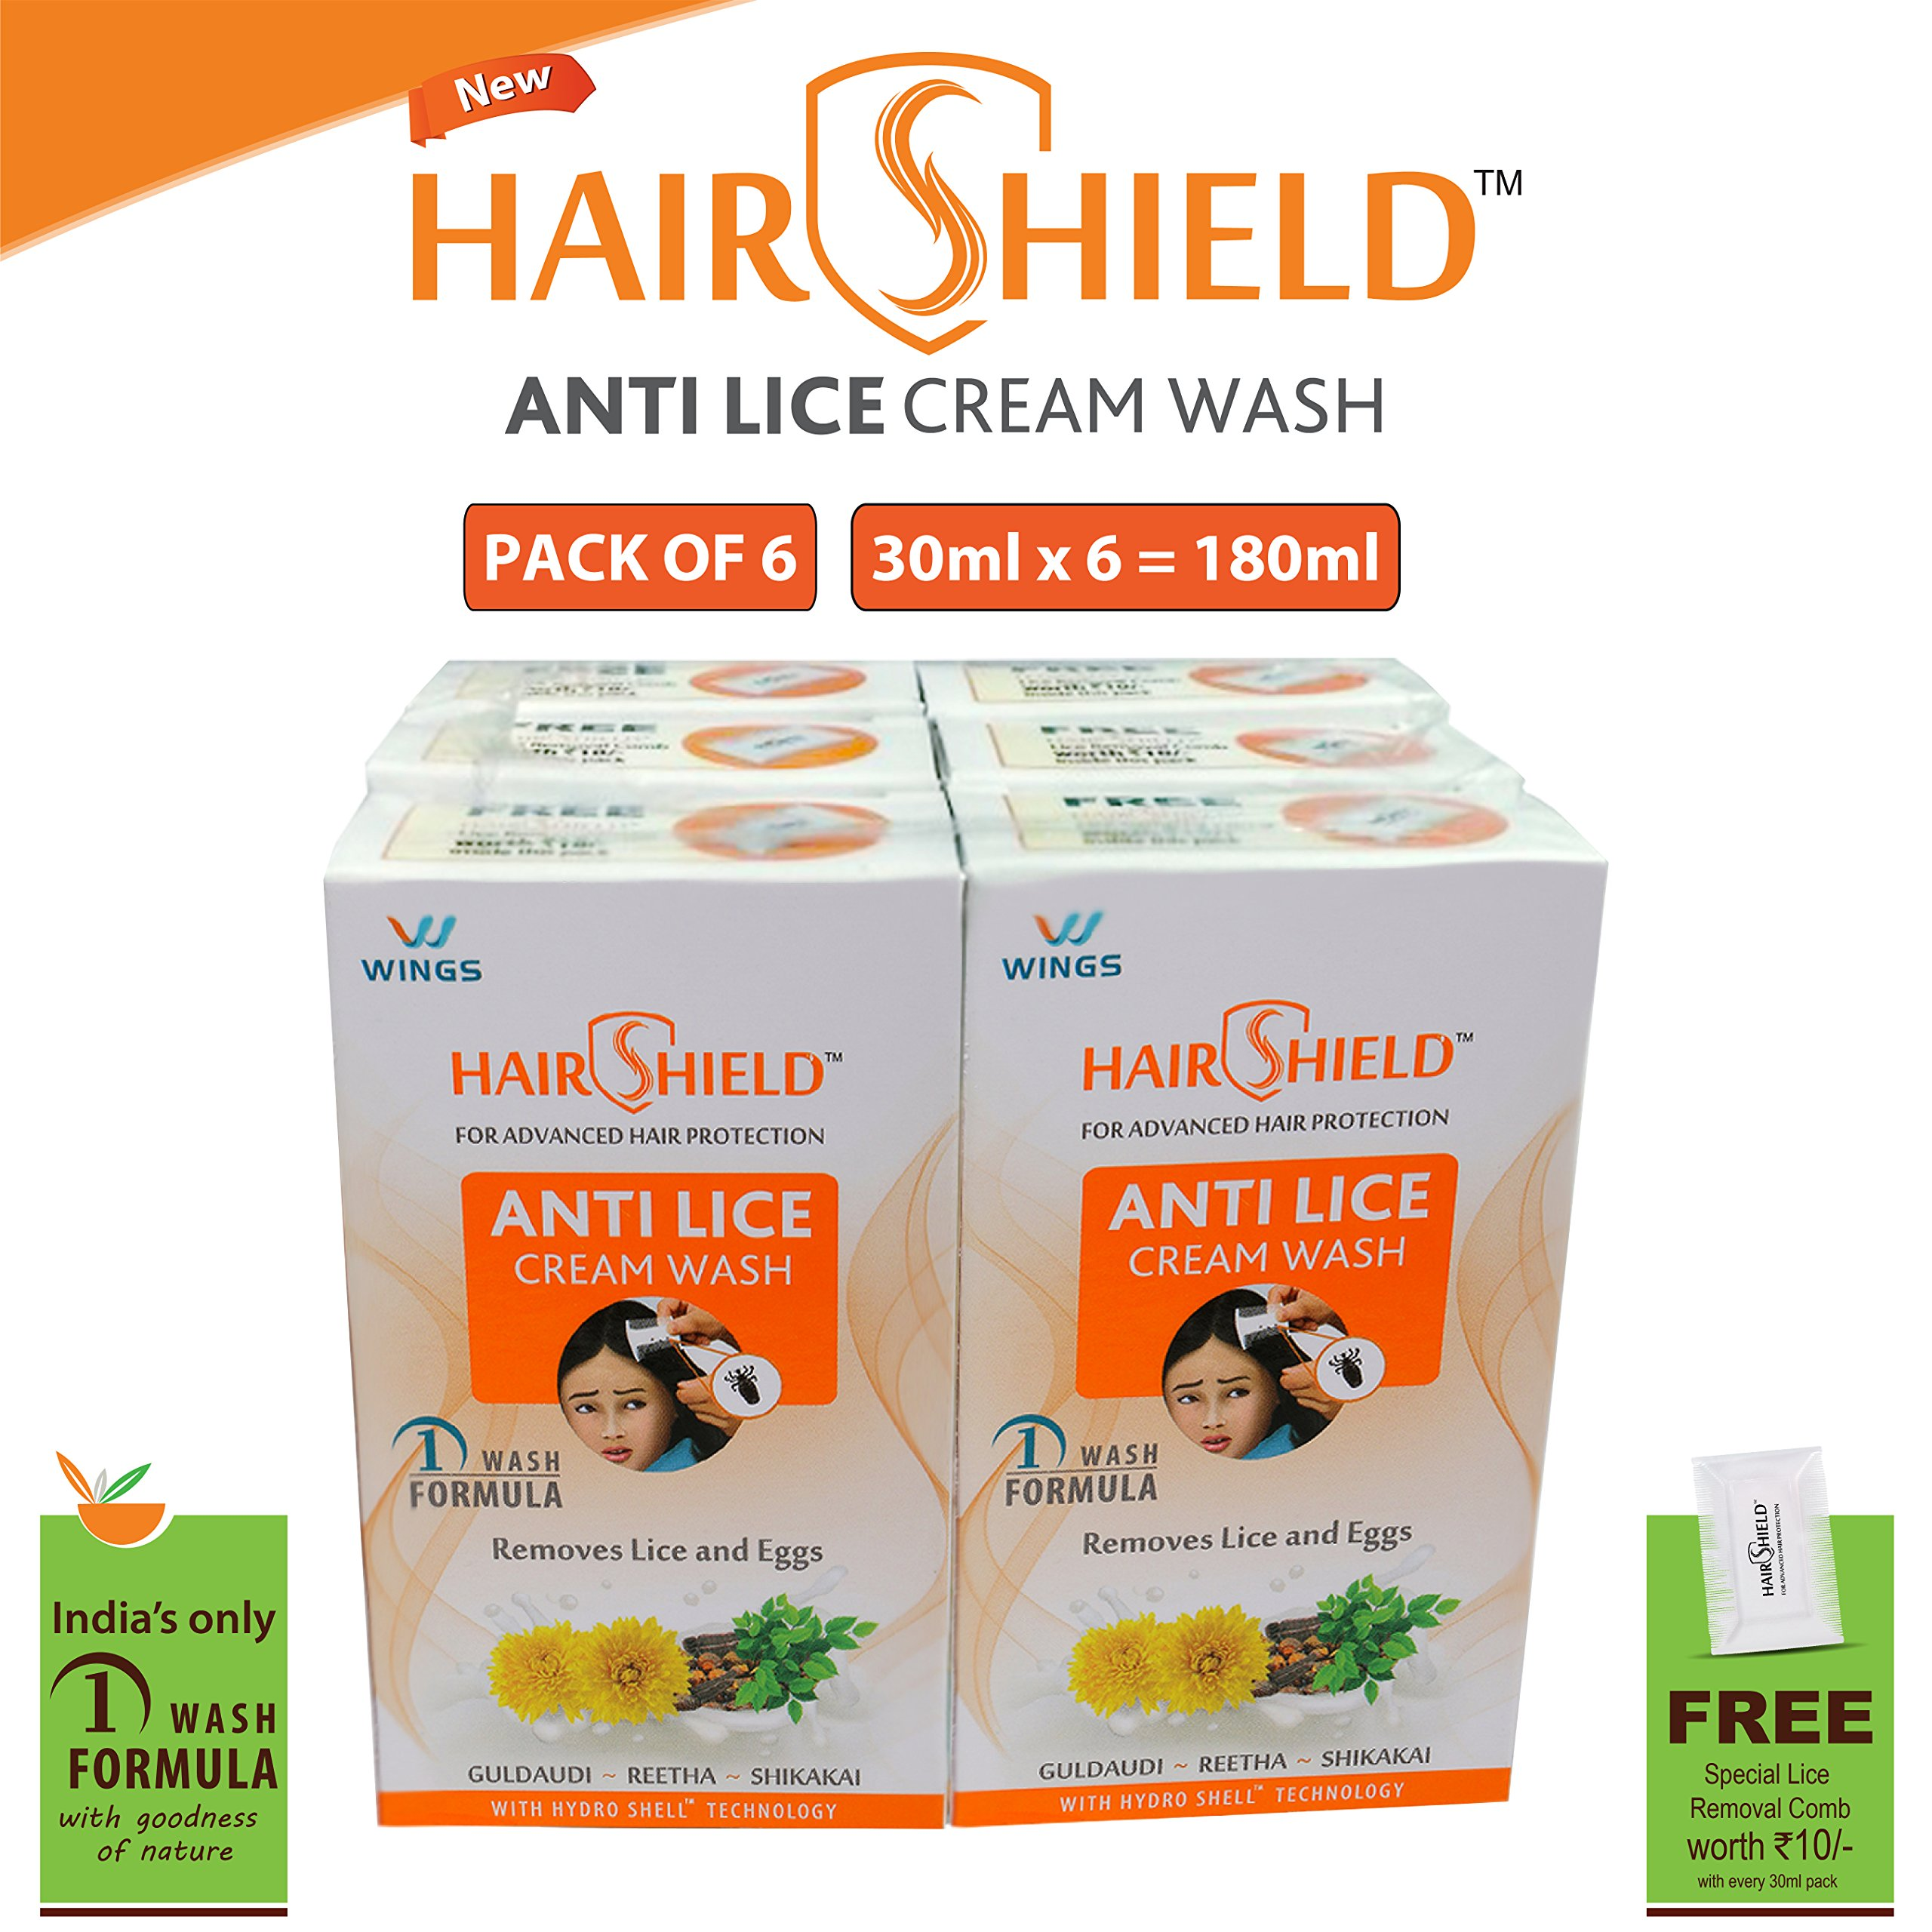 Hairshield Hairshield Anti Lice Cream Wash 30 Ml X Pack Of 6 by Hairshield